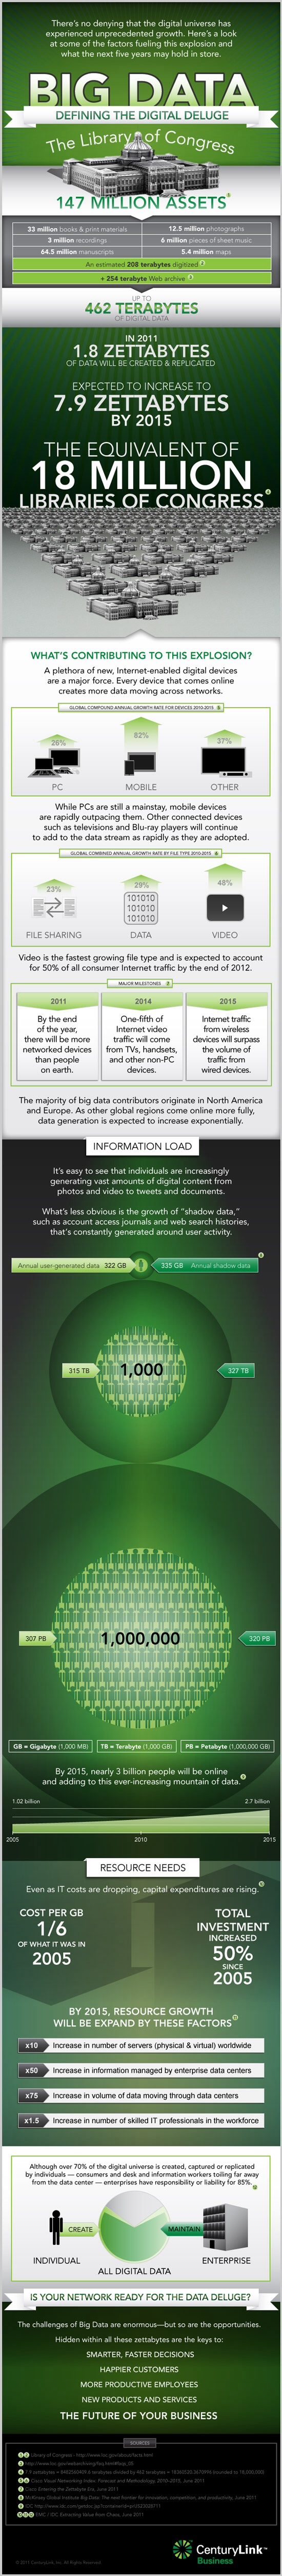 From CenturyLink: Infographic- Data Deluge